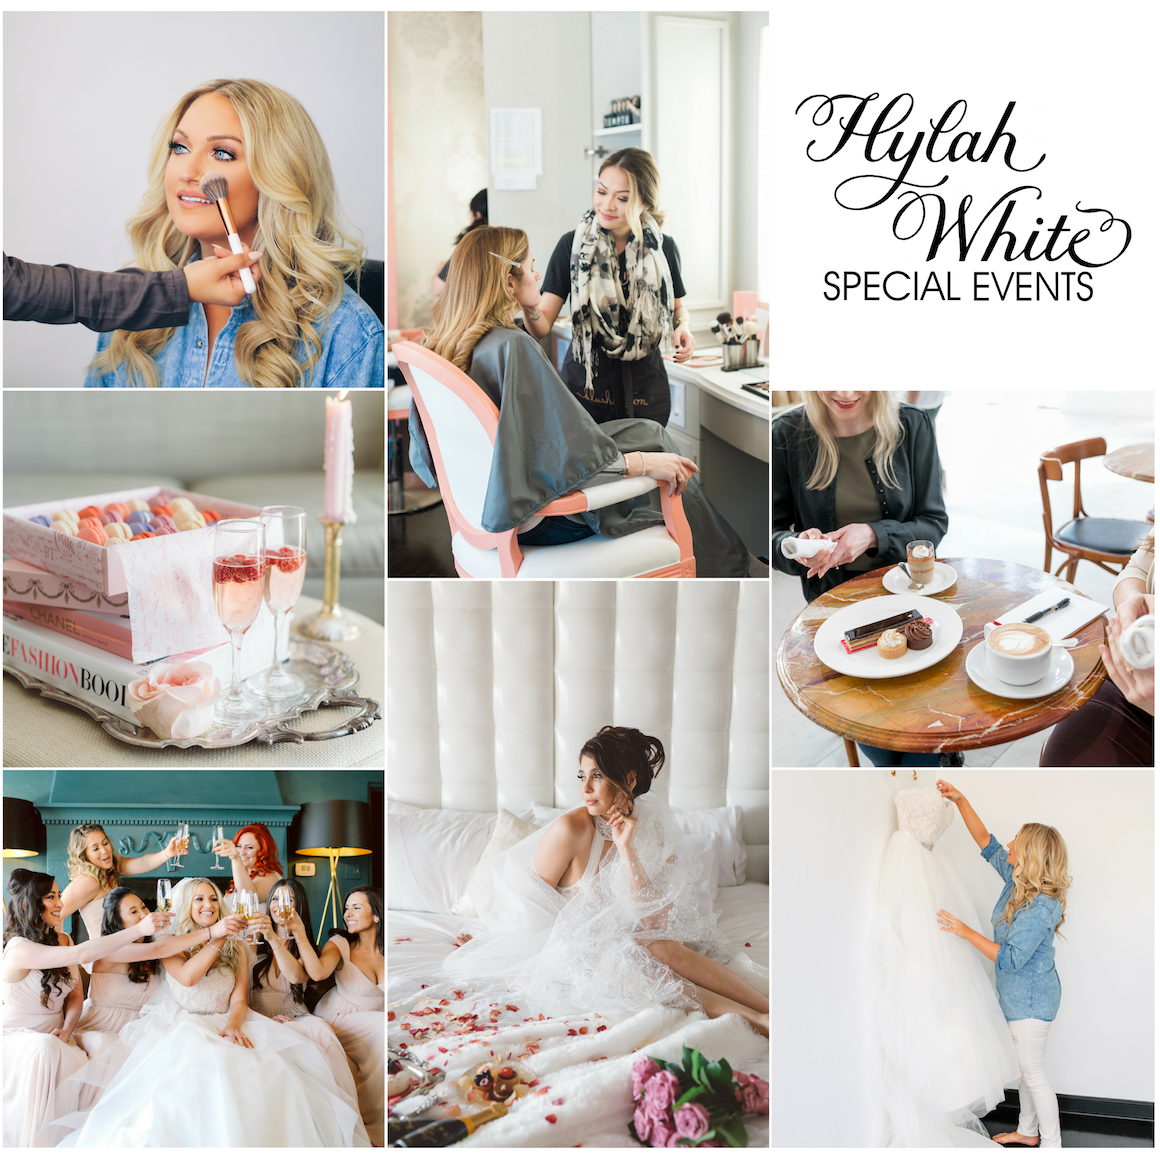 Wedding Day Wellness, Hylah White Special Events